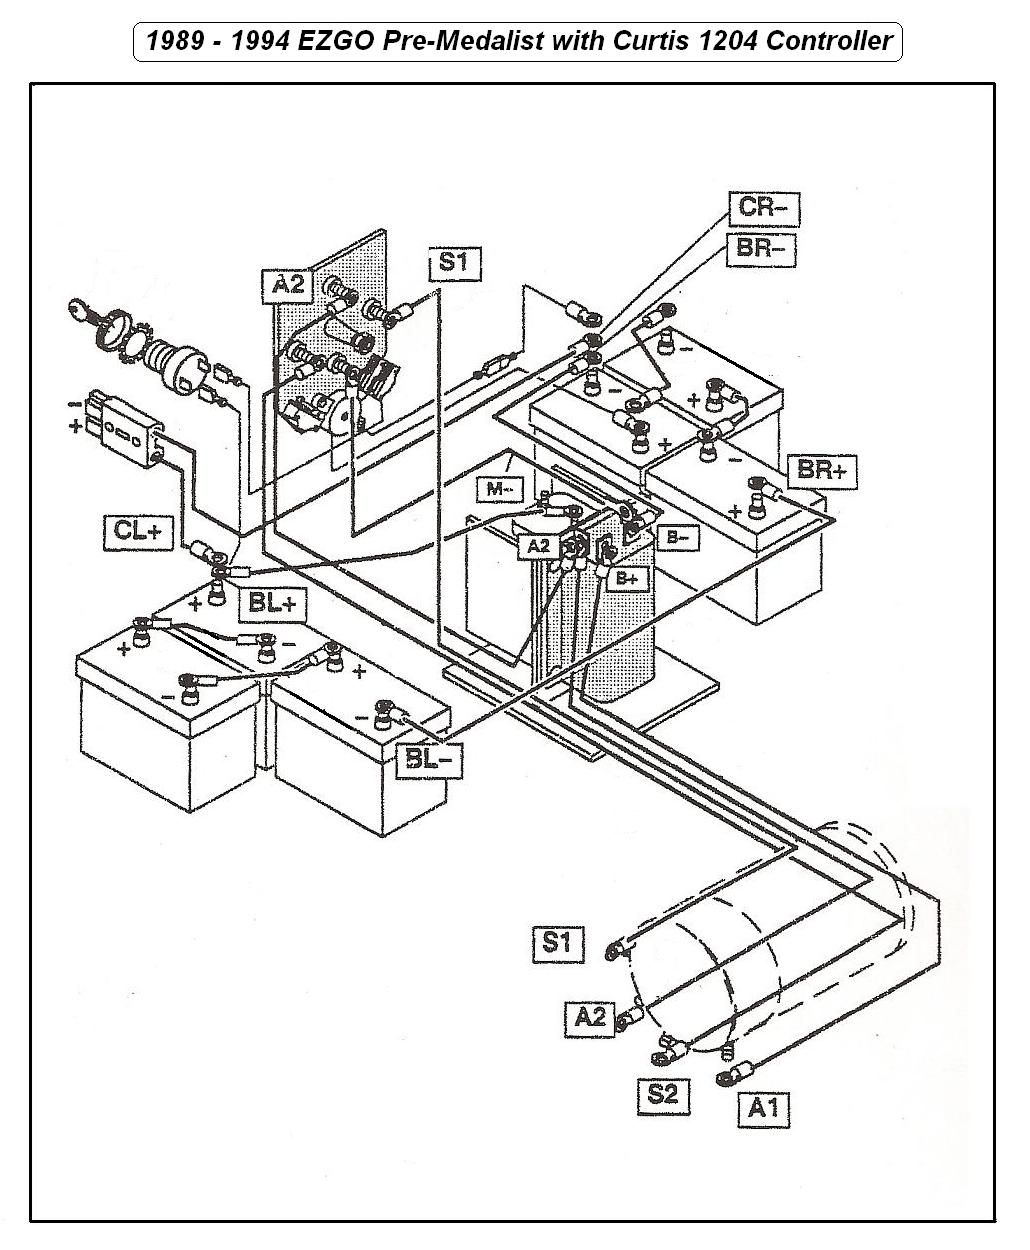 A89_94EZ_Wiring ezgo wiring diagram ezgo fuel pump \u2022 wiring diagrams j squared co ezgo golf cart wiring diagram at n-0.co